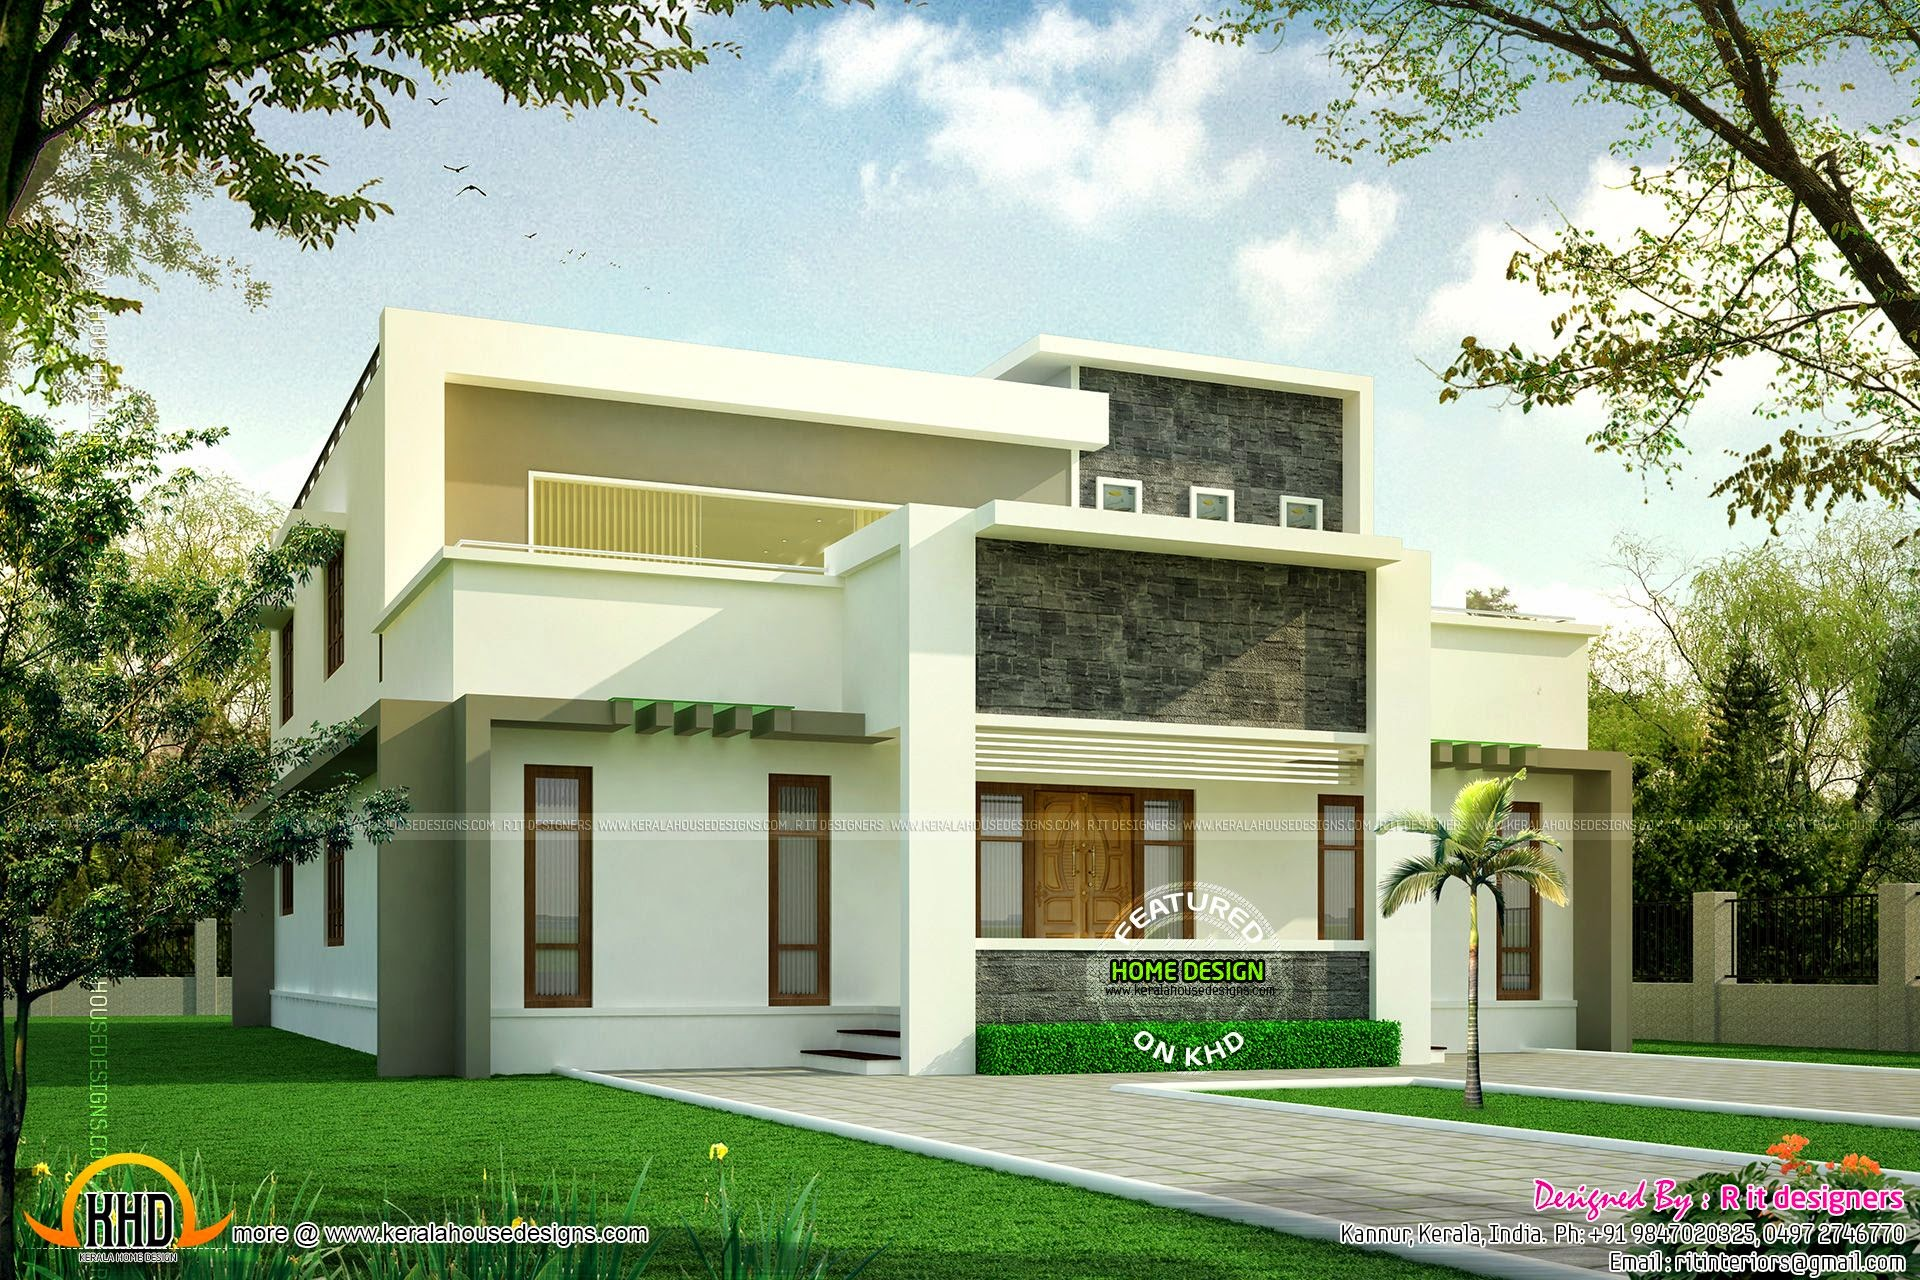 Flat roof home luxury kerala home design and floor plans - Flat roof home designs ...